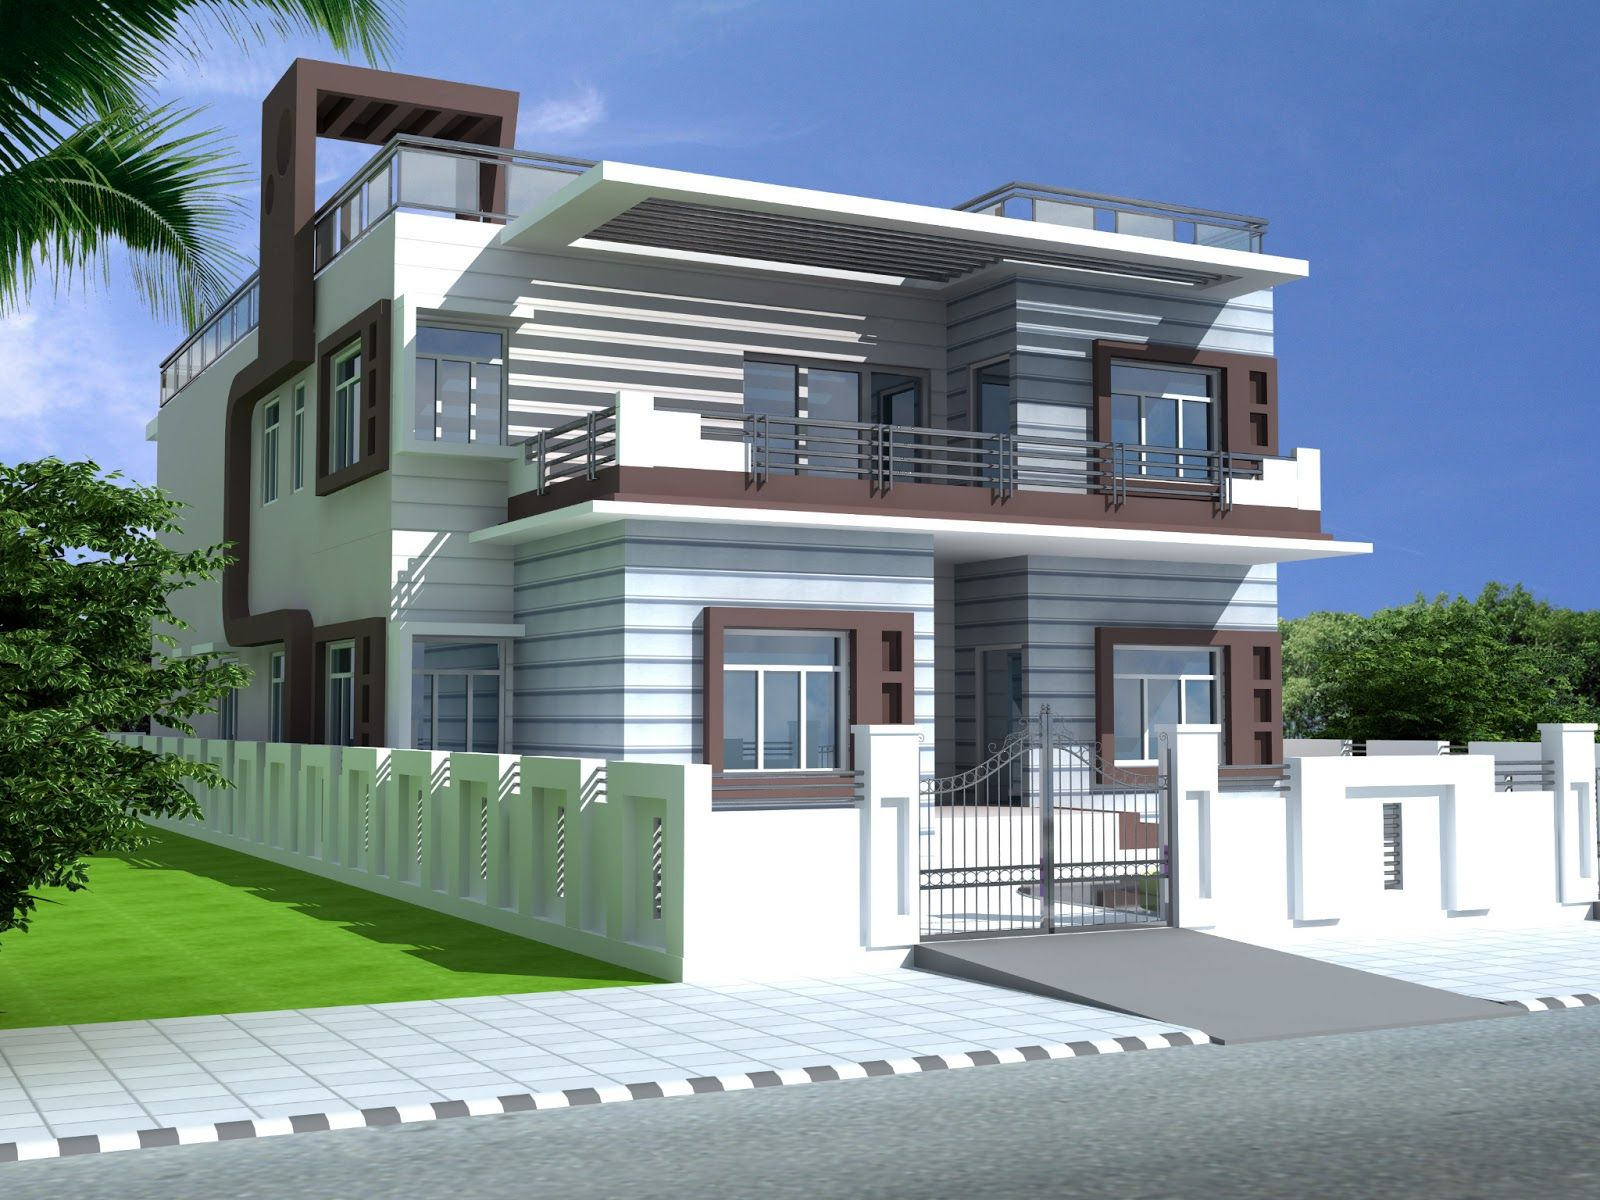 6 bedrooms duplex house design in 390m2 13m x 30m for Front elevations of duplex houses